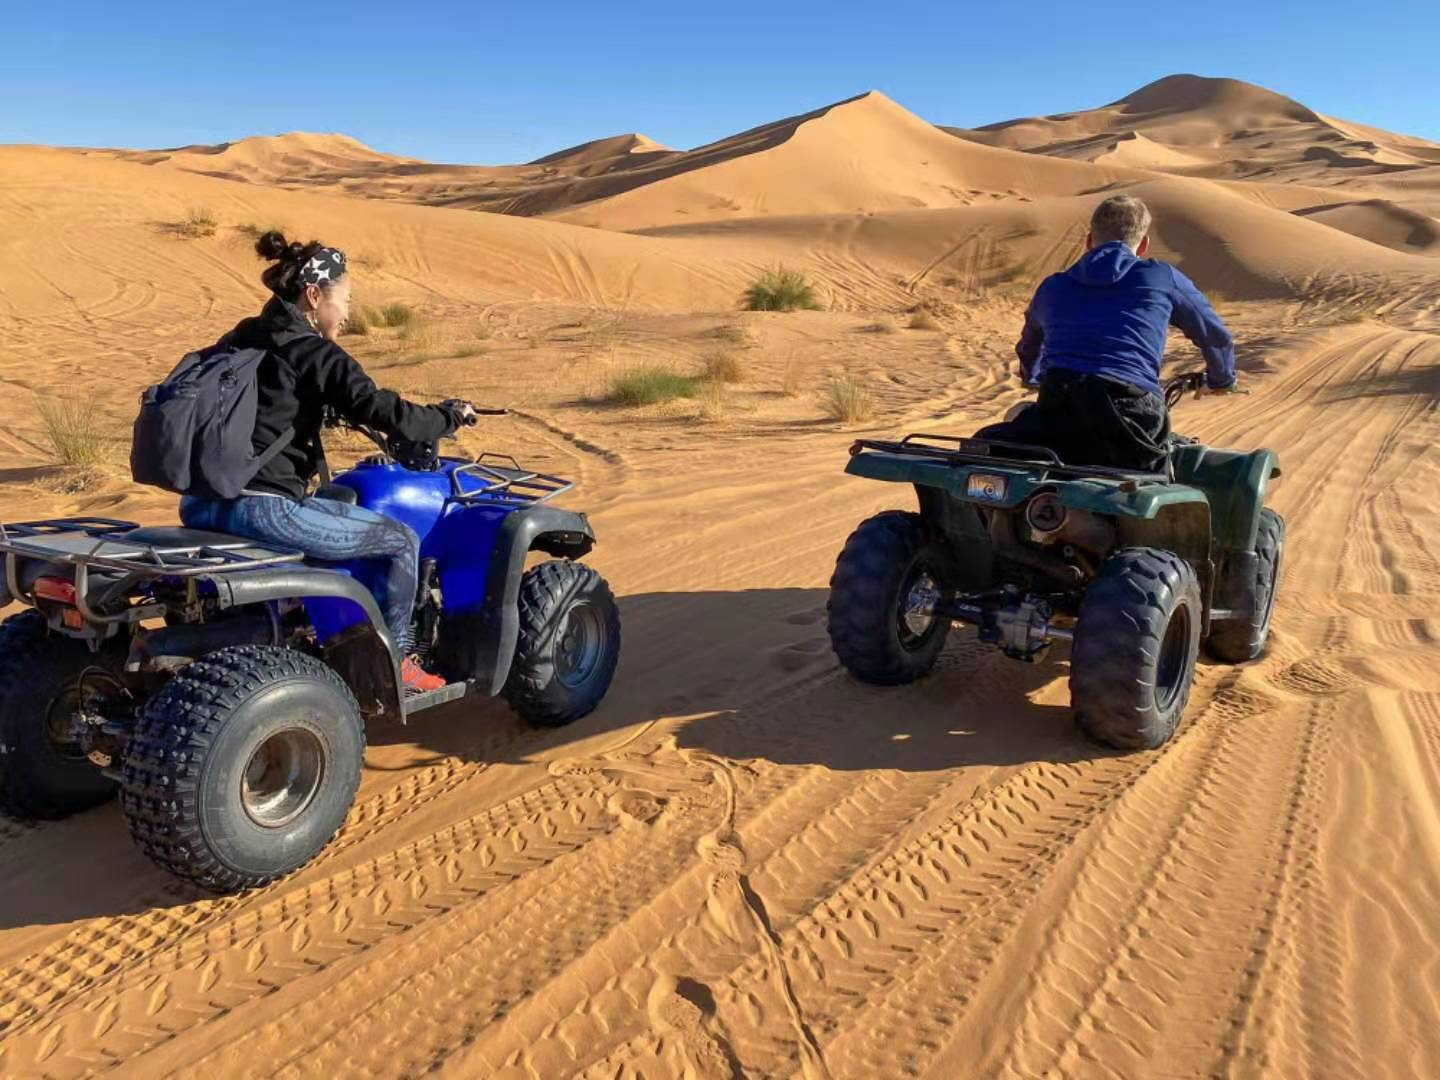 Riding quads in Taghit, Algeria